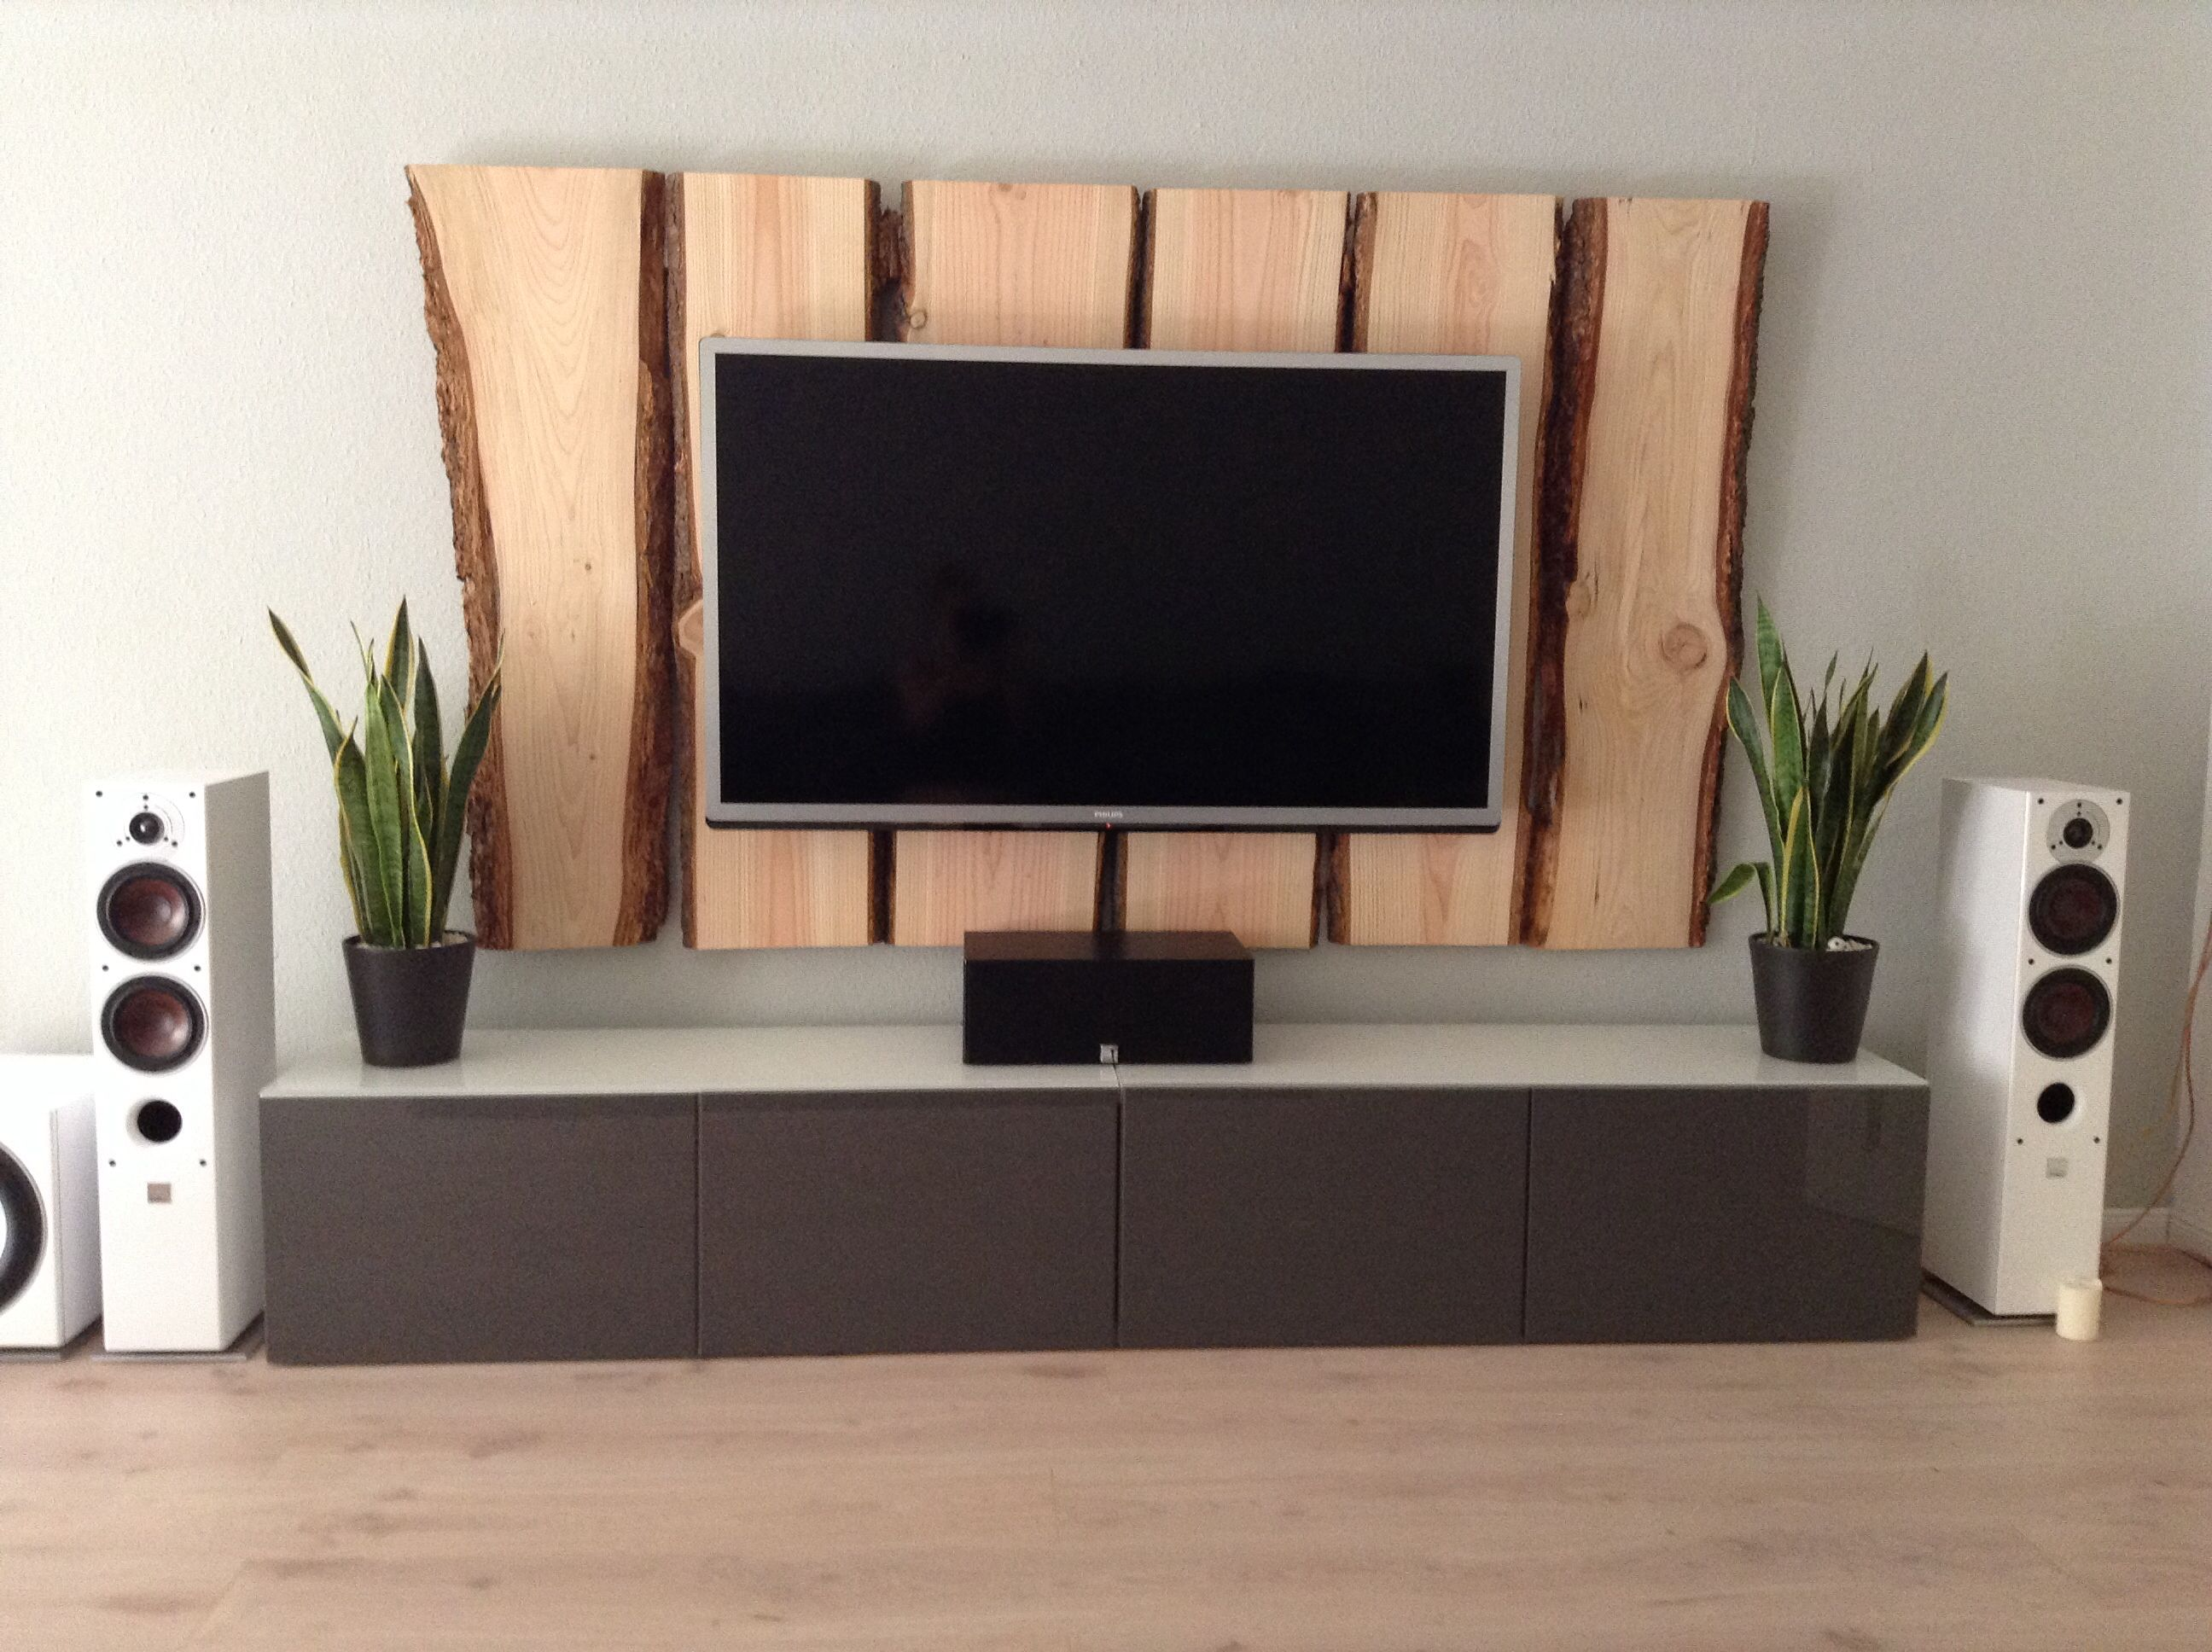 holz tv wand tv wall wood deko und so pinterest wall wood tv walls and wand. Black Bedroom Furniture Sets. Home Design Ideas